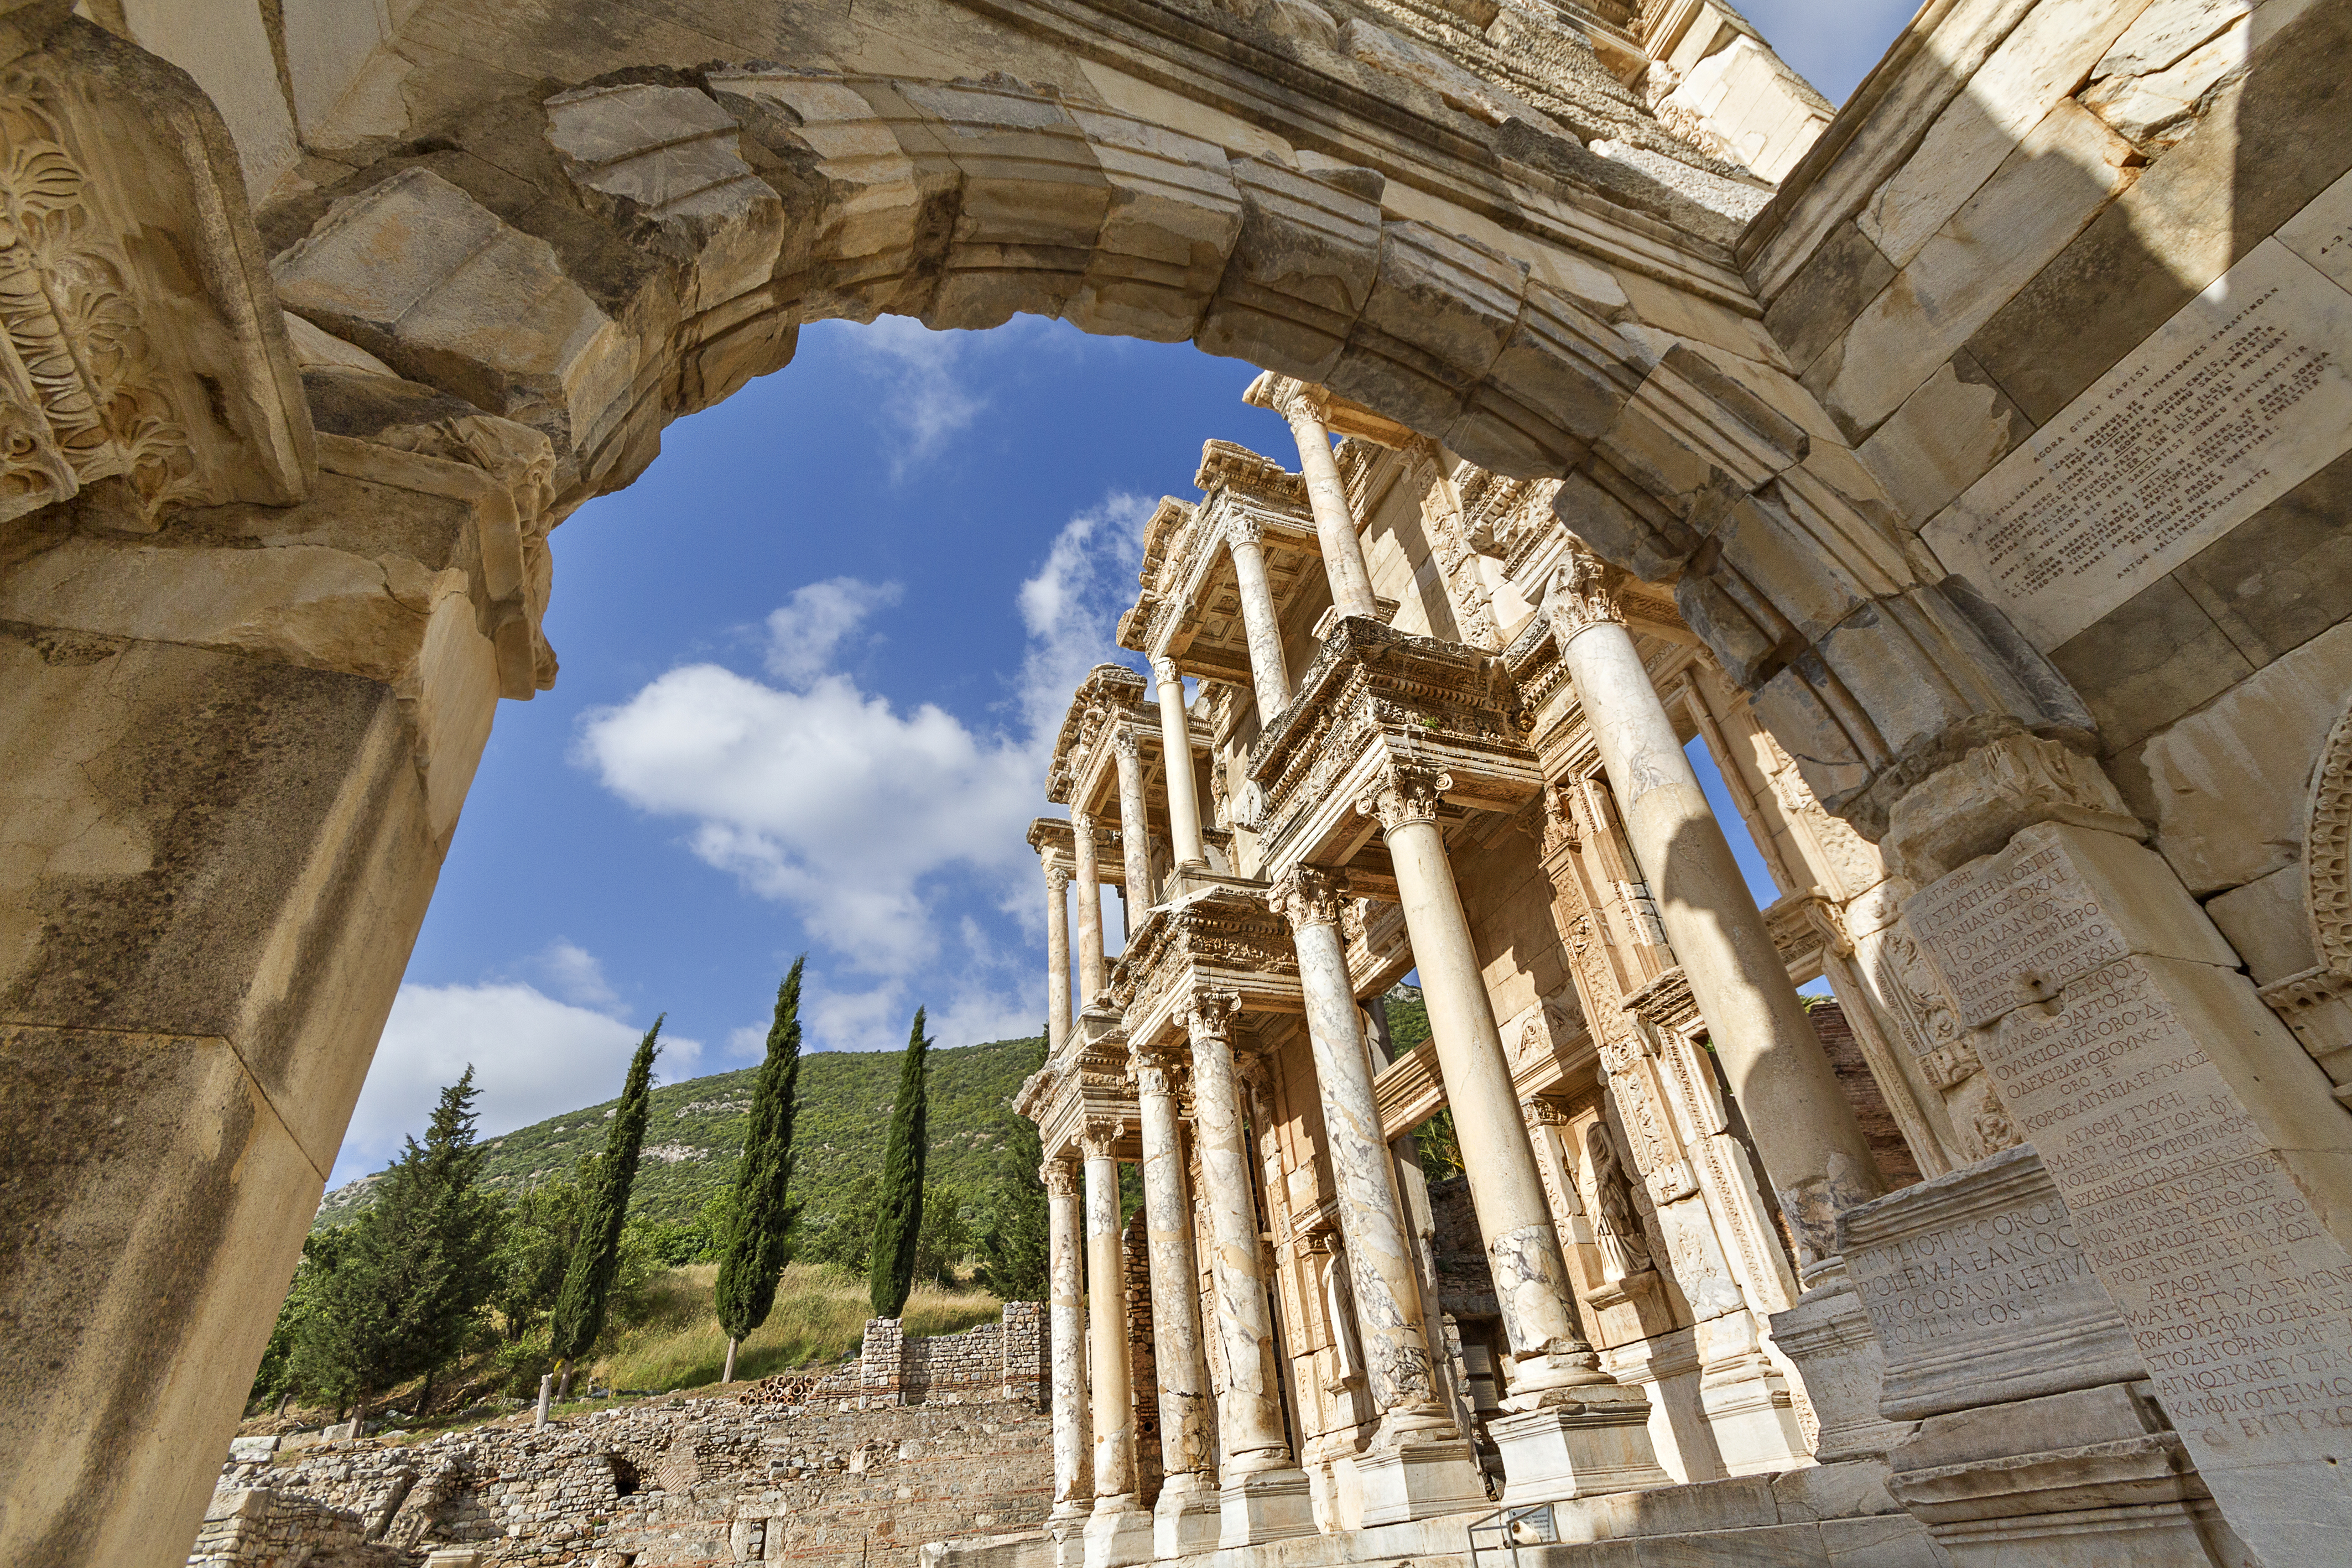 Roman library of Celsus in the ruins of Ephesus, Turkey (Thinkstock/PA)